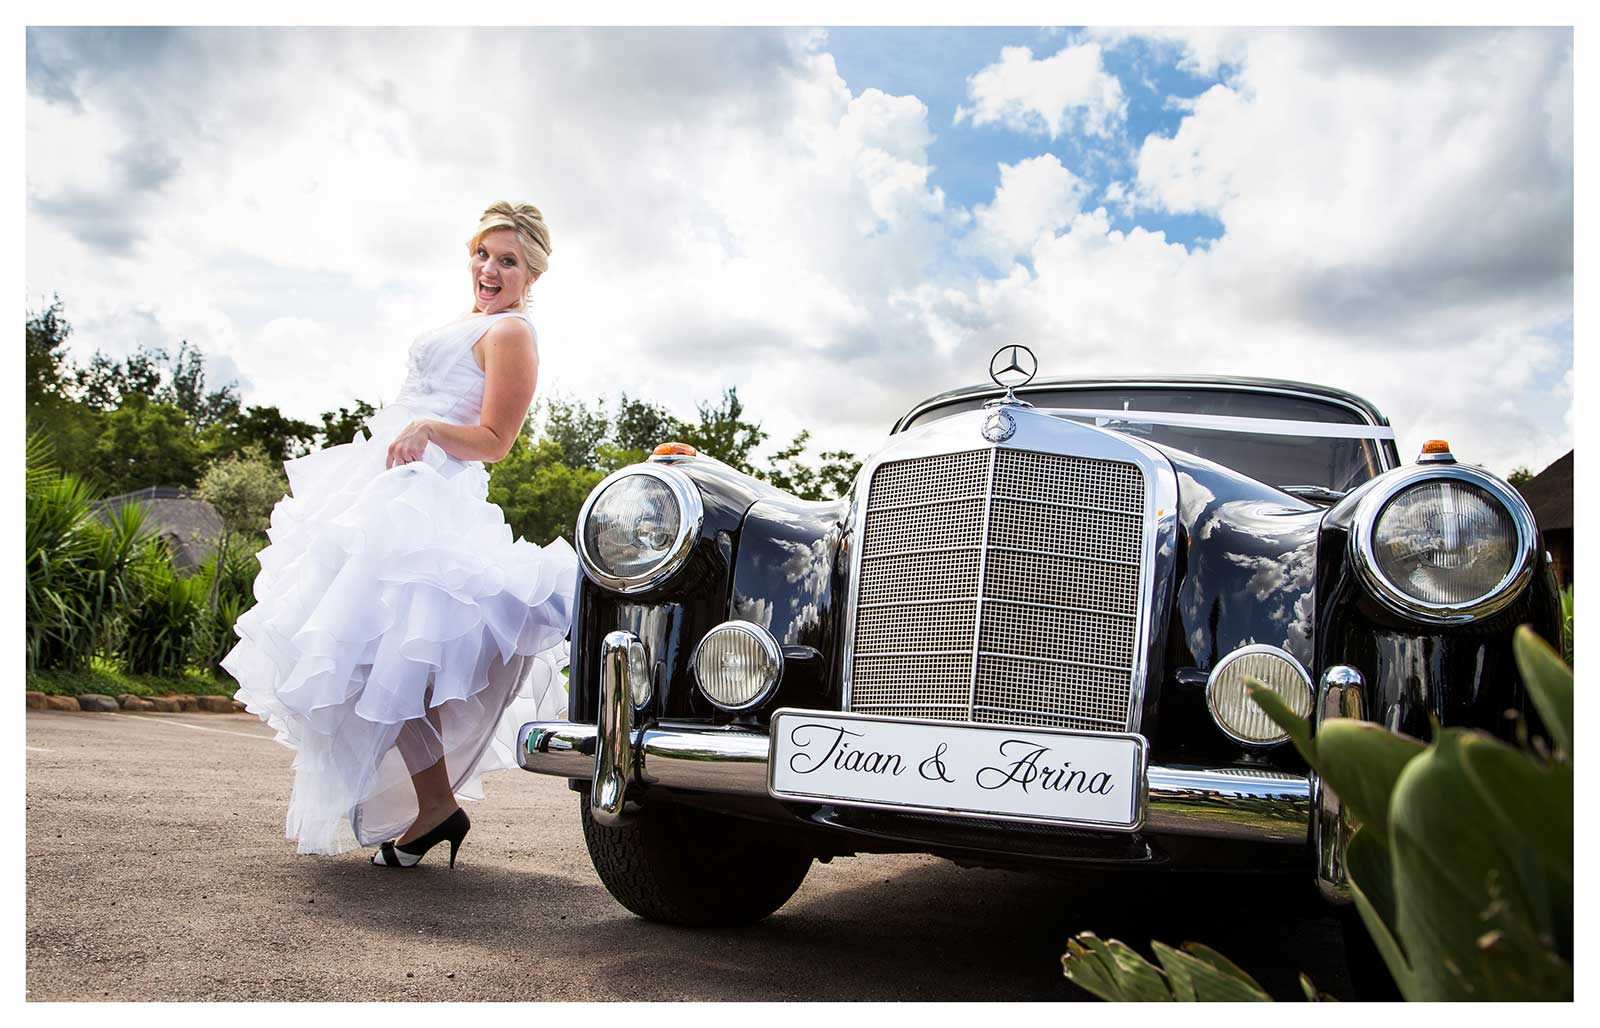 Excited bride with vintage car